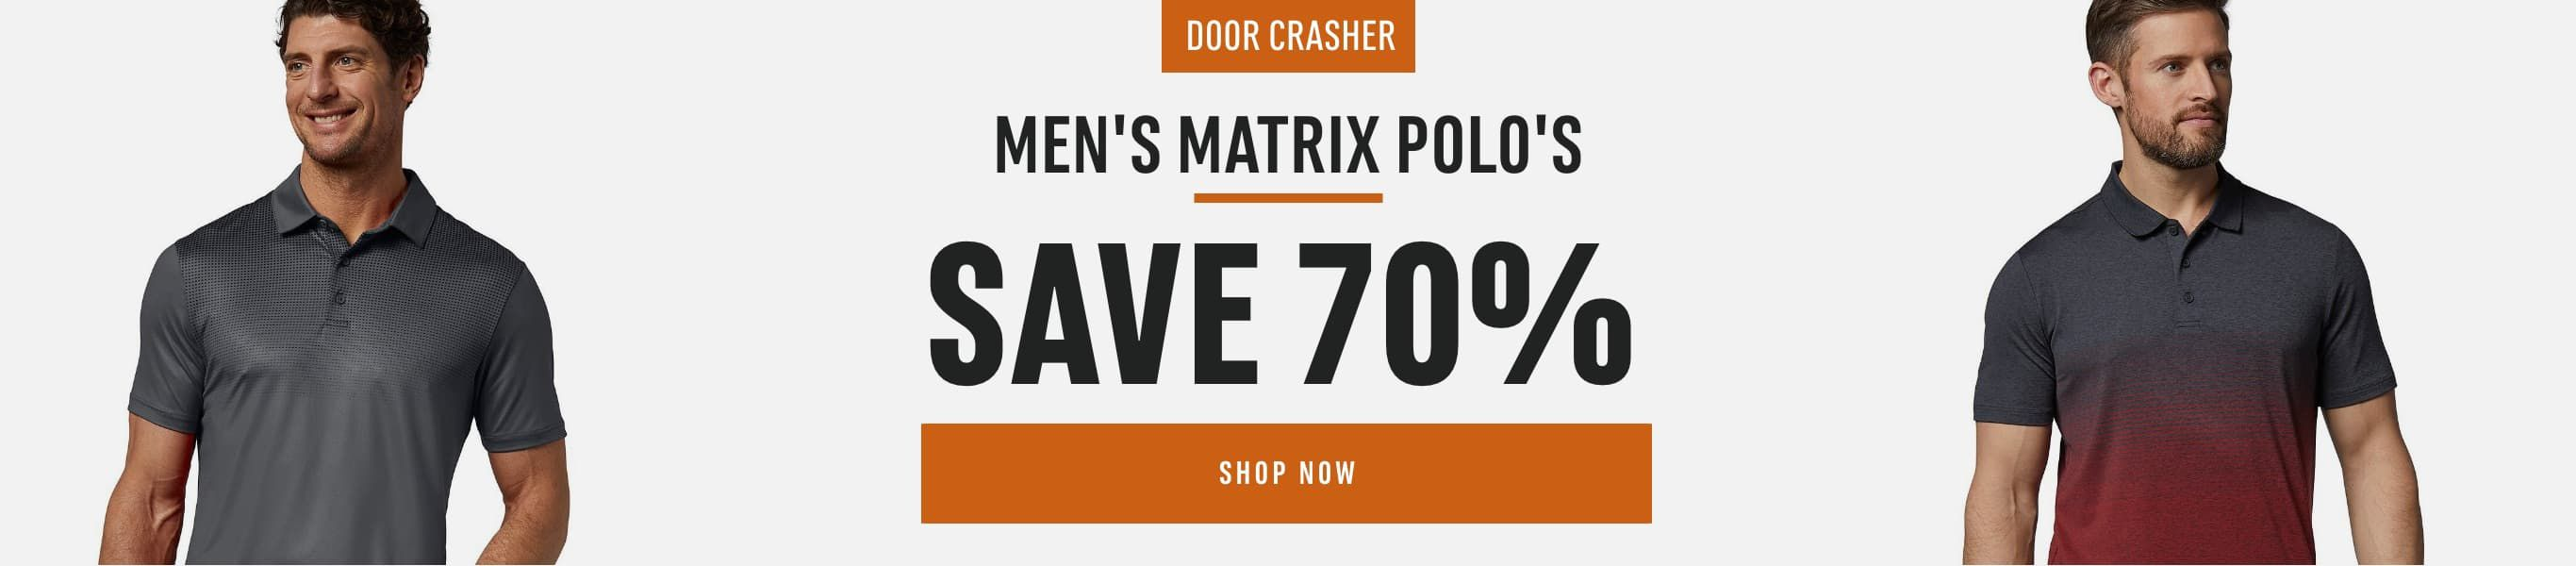 Men's Matrix Polo's: Save 70%